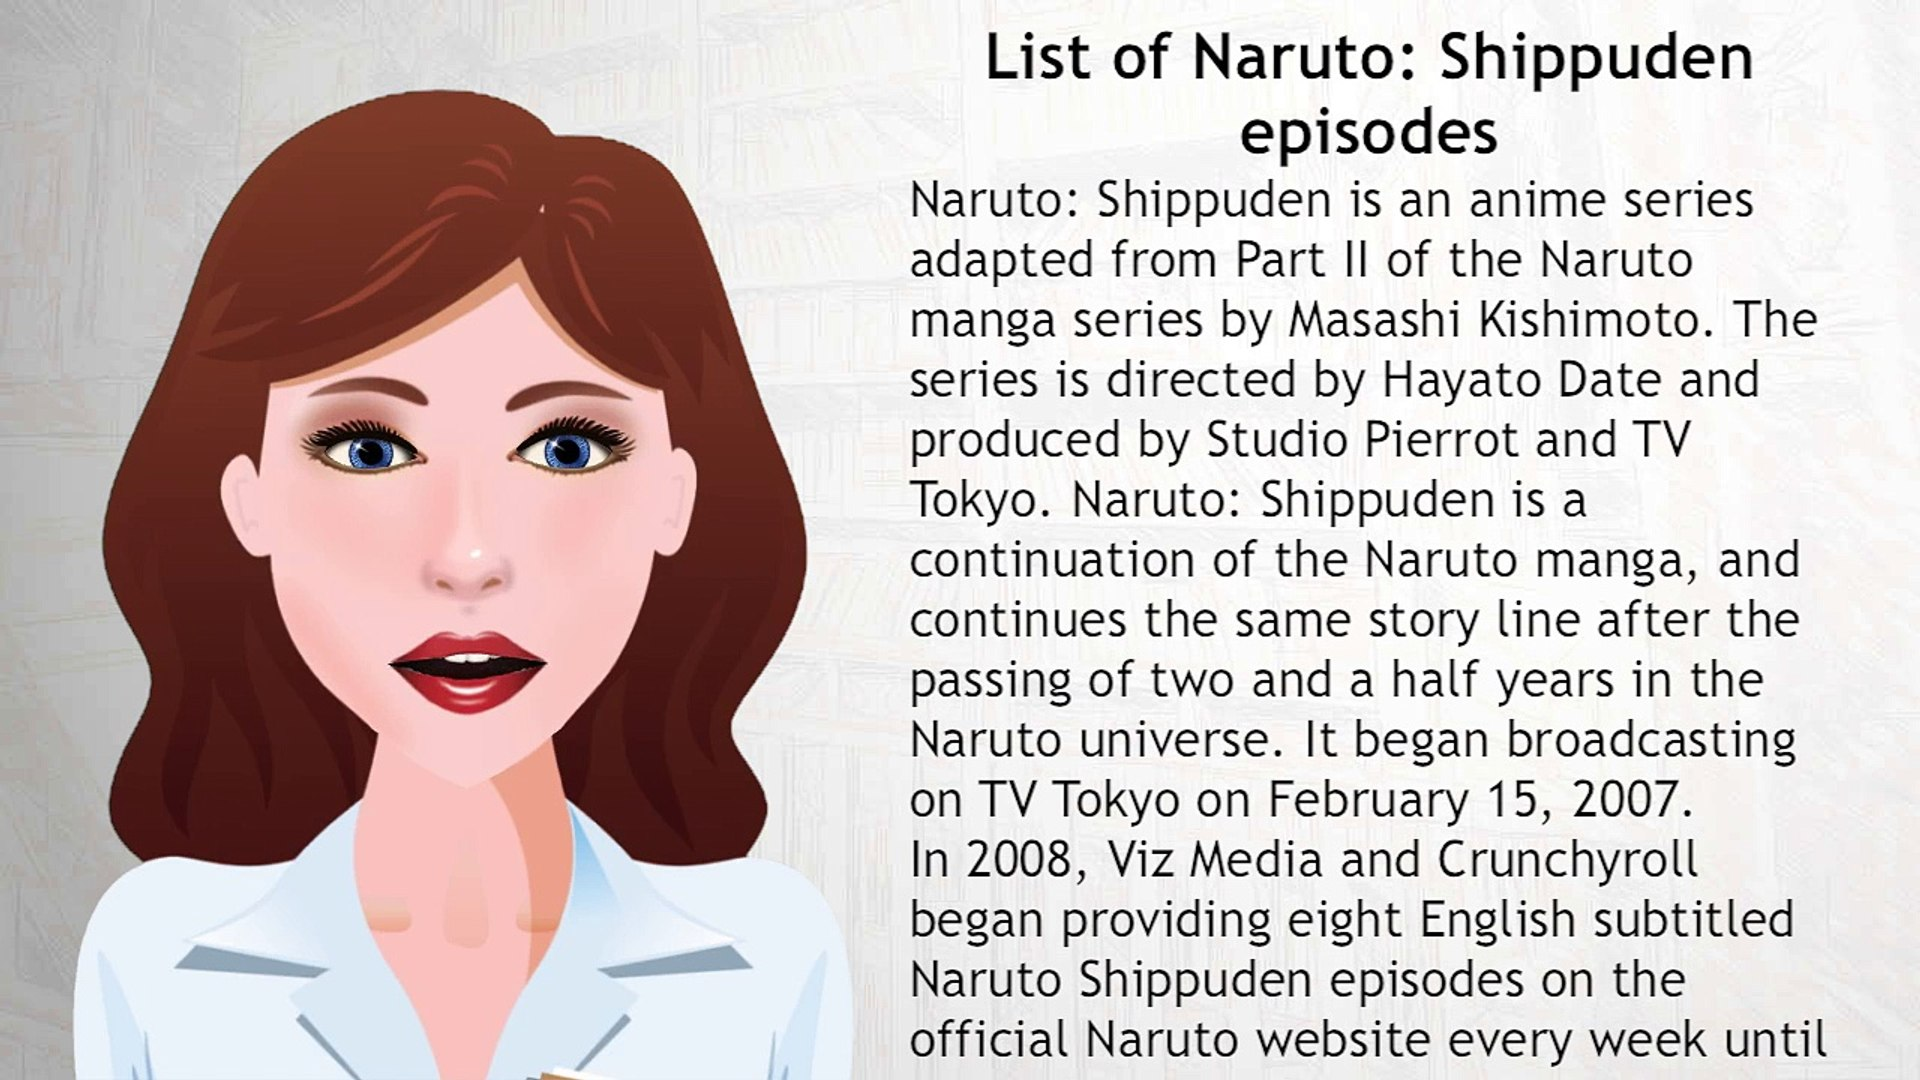 List of Naruto: Shippuden episodes